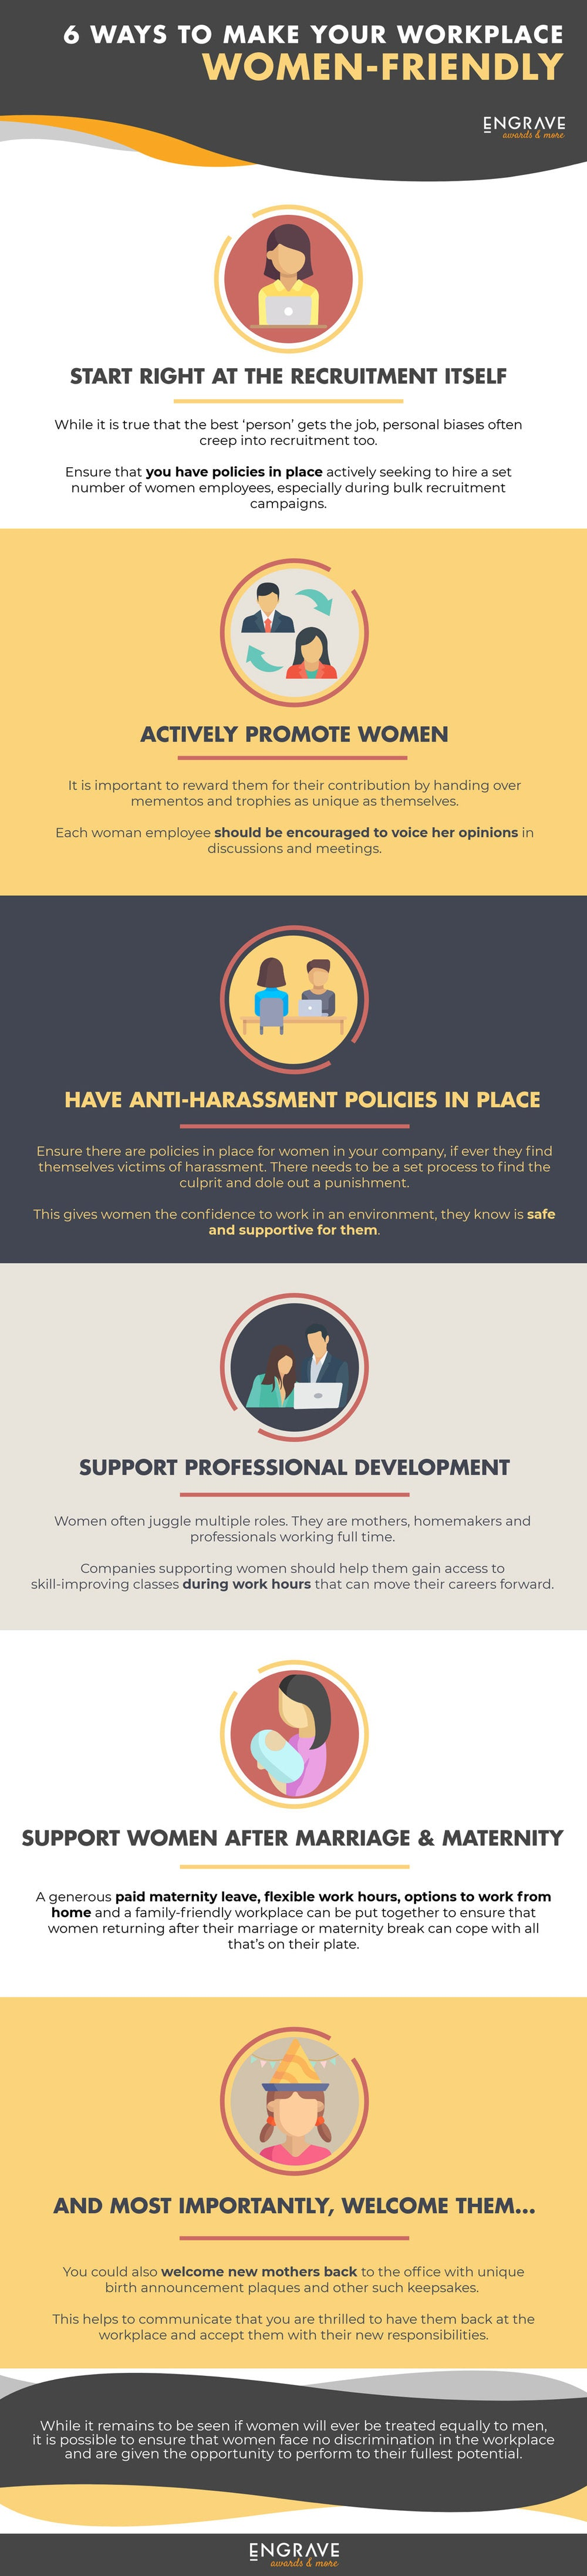 6 Ways To Make Your Workplace Women-Friendly